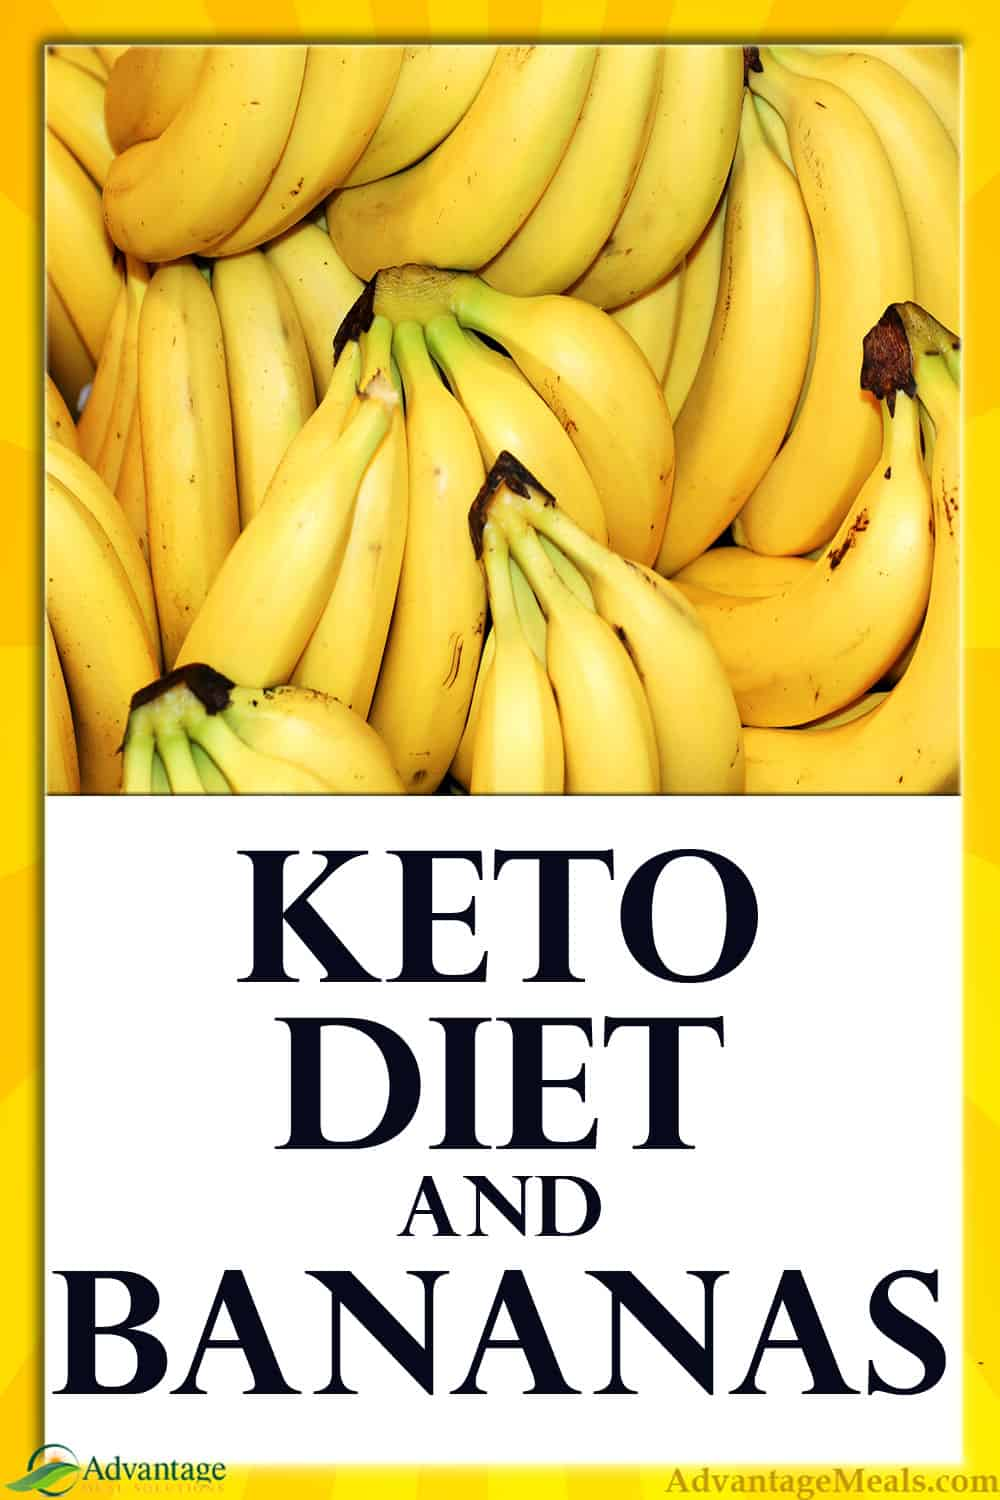 Bananas are packed full of carbs and are not a keto friendly fruit.  It\'s hard to give up fruits, and while there are some keto fruits, bananas are not one of them.  Did you know that modern bananas are making monkeys fat and sick?  Learn more here. ~ Angela of @AdvantageMeals #KetoDiet #KetoFruit